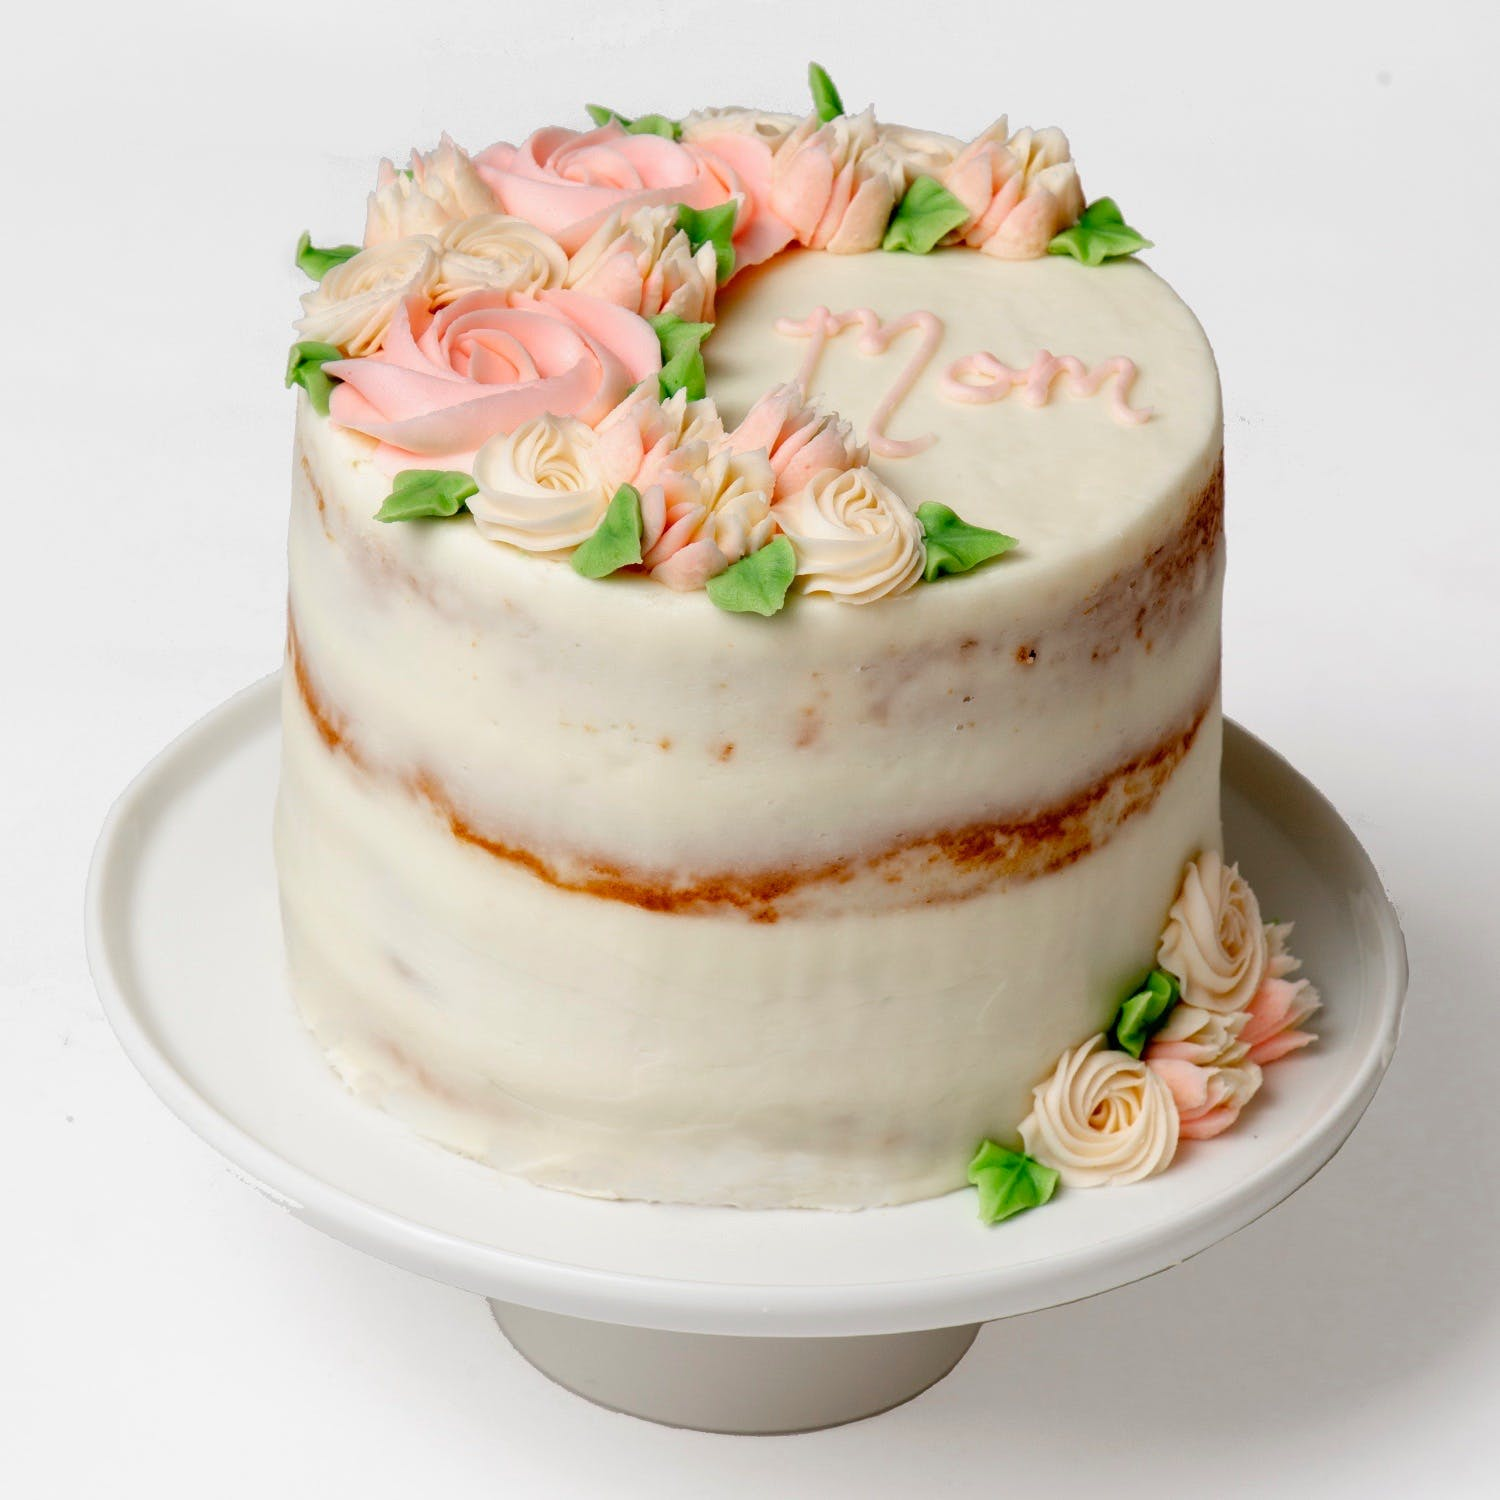 Outstanding Naked Floral Mothers Day Cake By We Take The Cake Goldbelly Funny Birthday Cards Online Kookostrdamsfinfo